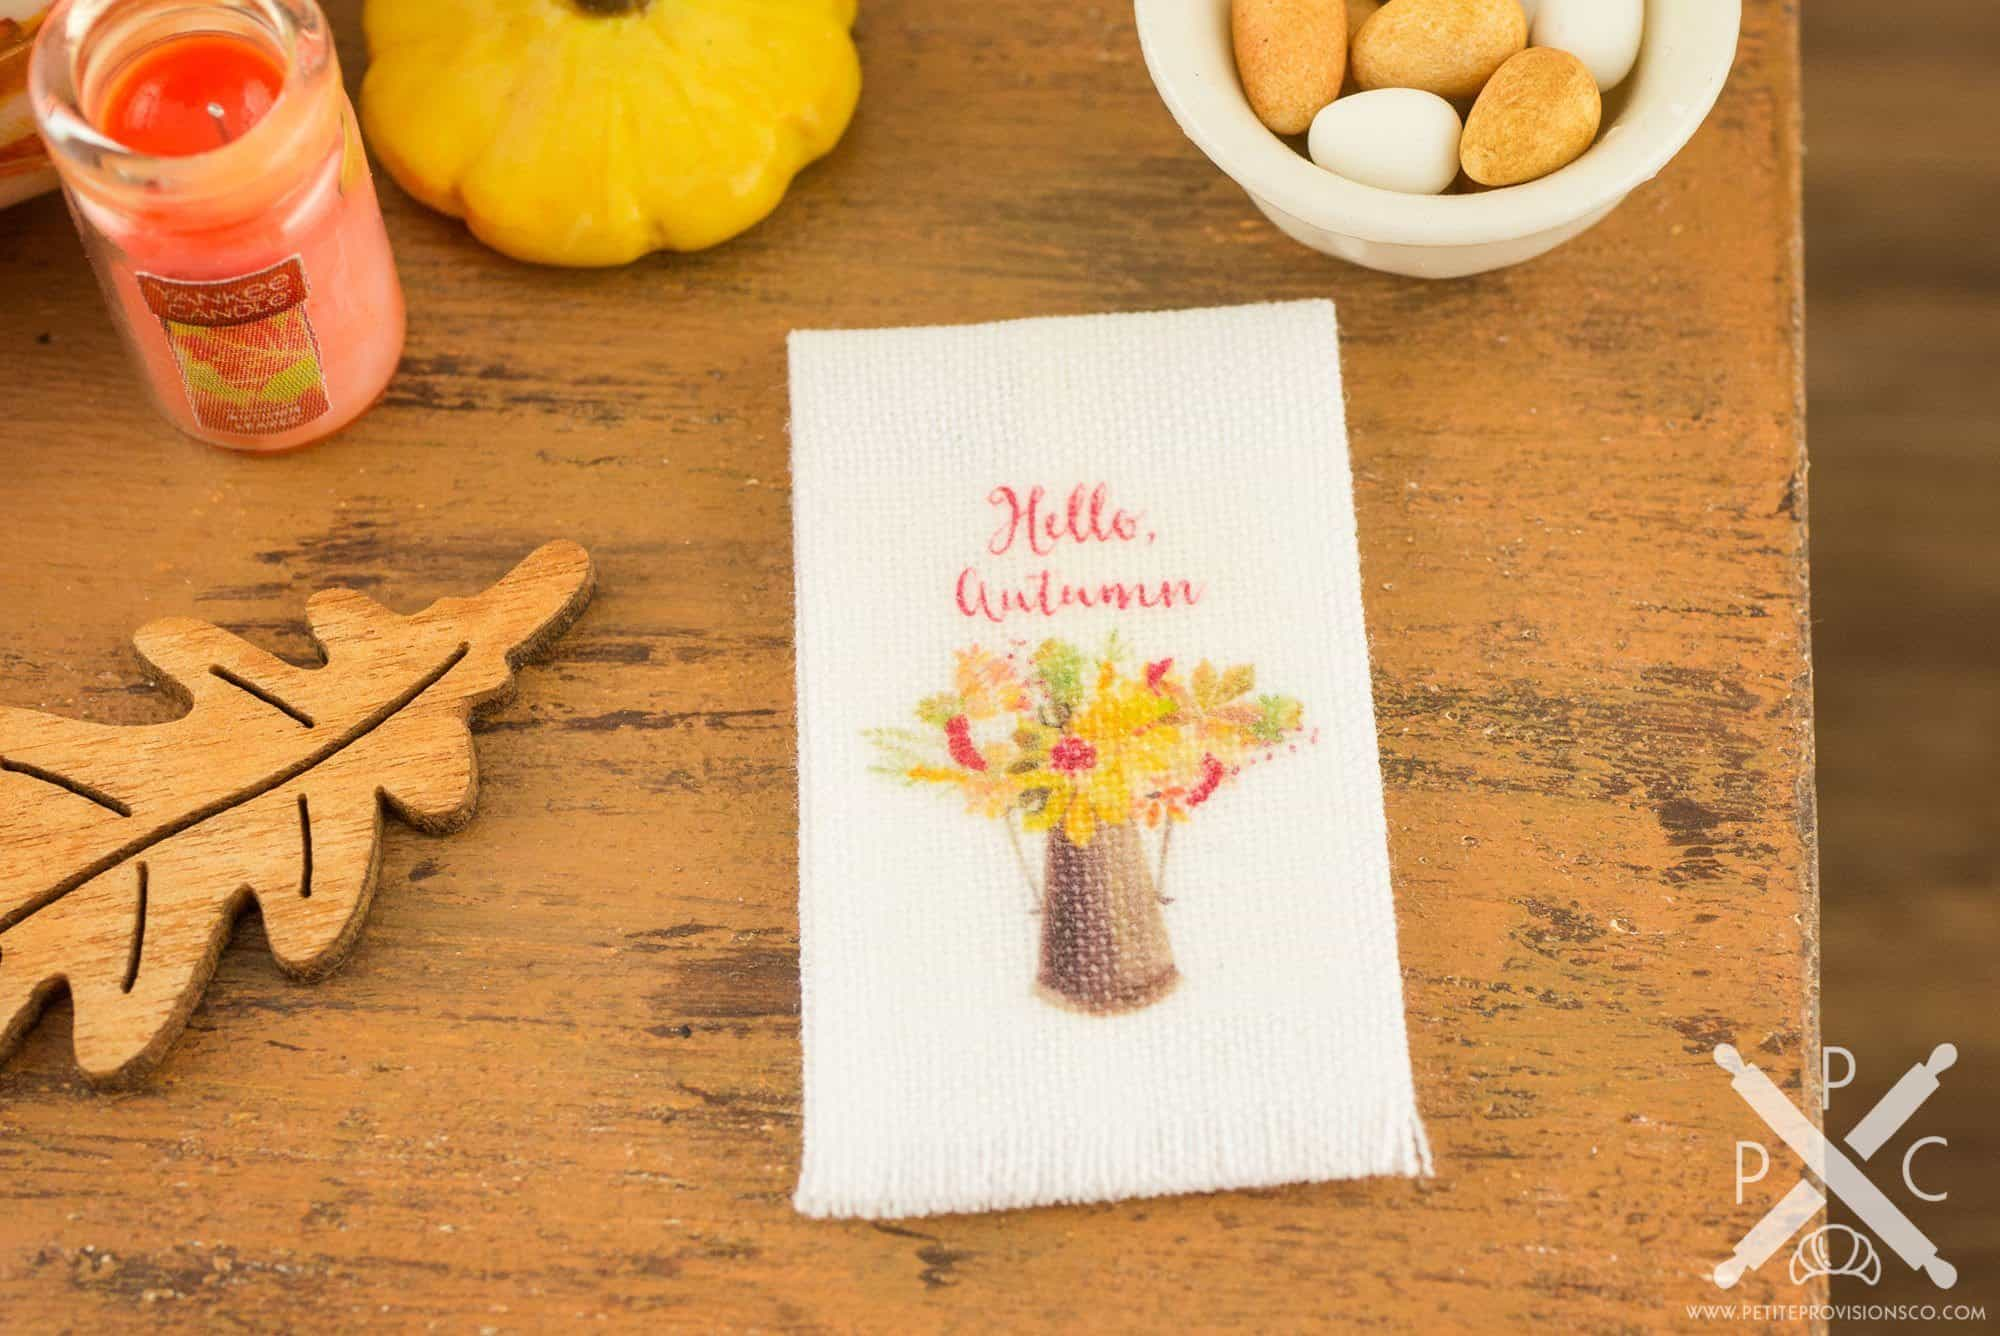 Hello autumn floral bouquet tea towel miniature hello autumn floral bouquet tea towel 112 dollhouse miniature the petite provisions co izmirmasajfo